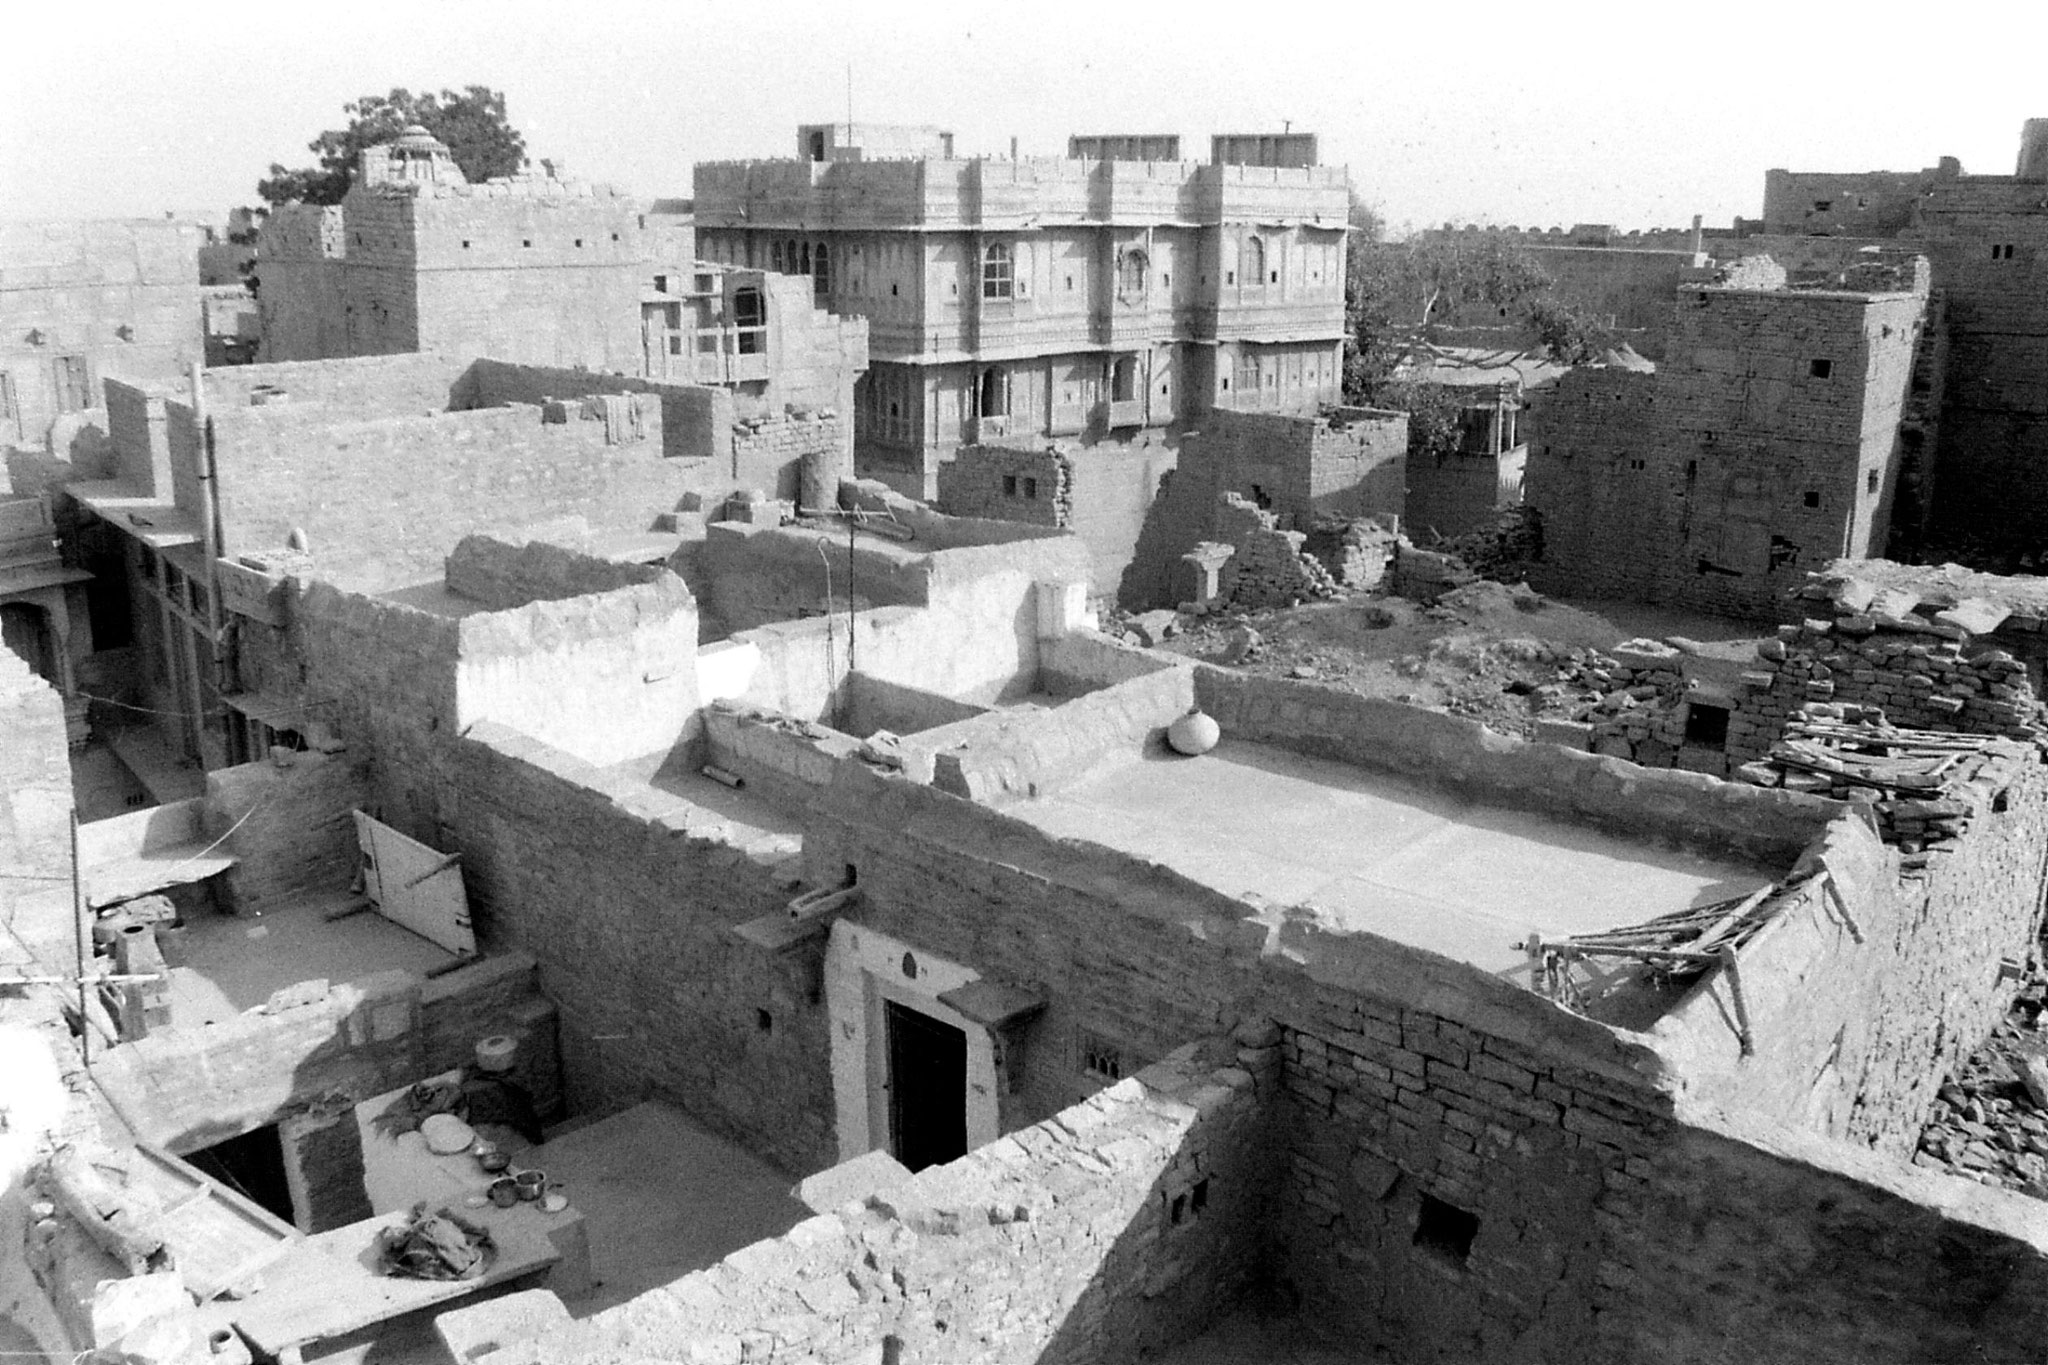 2/12/1989: 6: Jaisalmer from our hotel looking NE